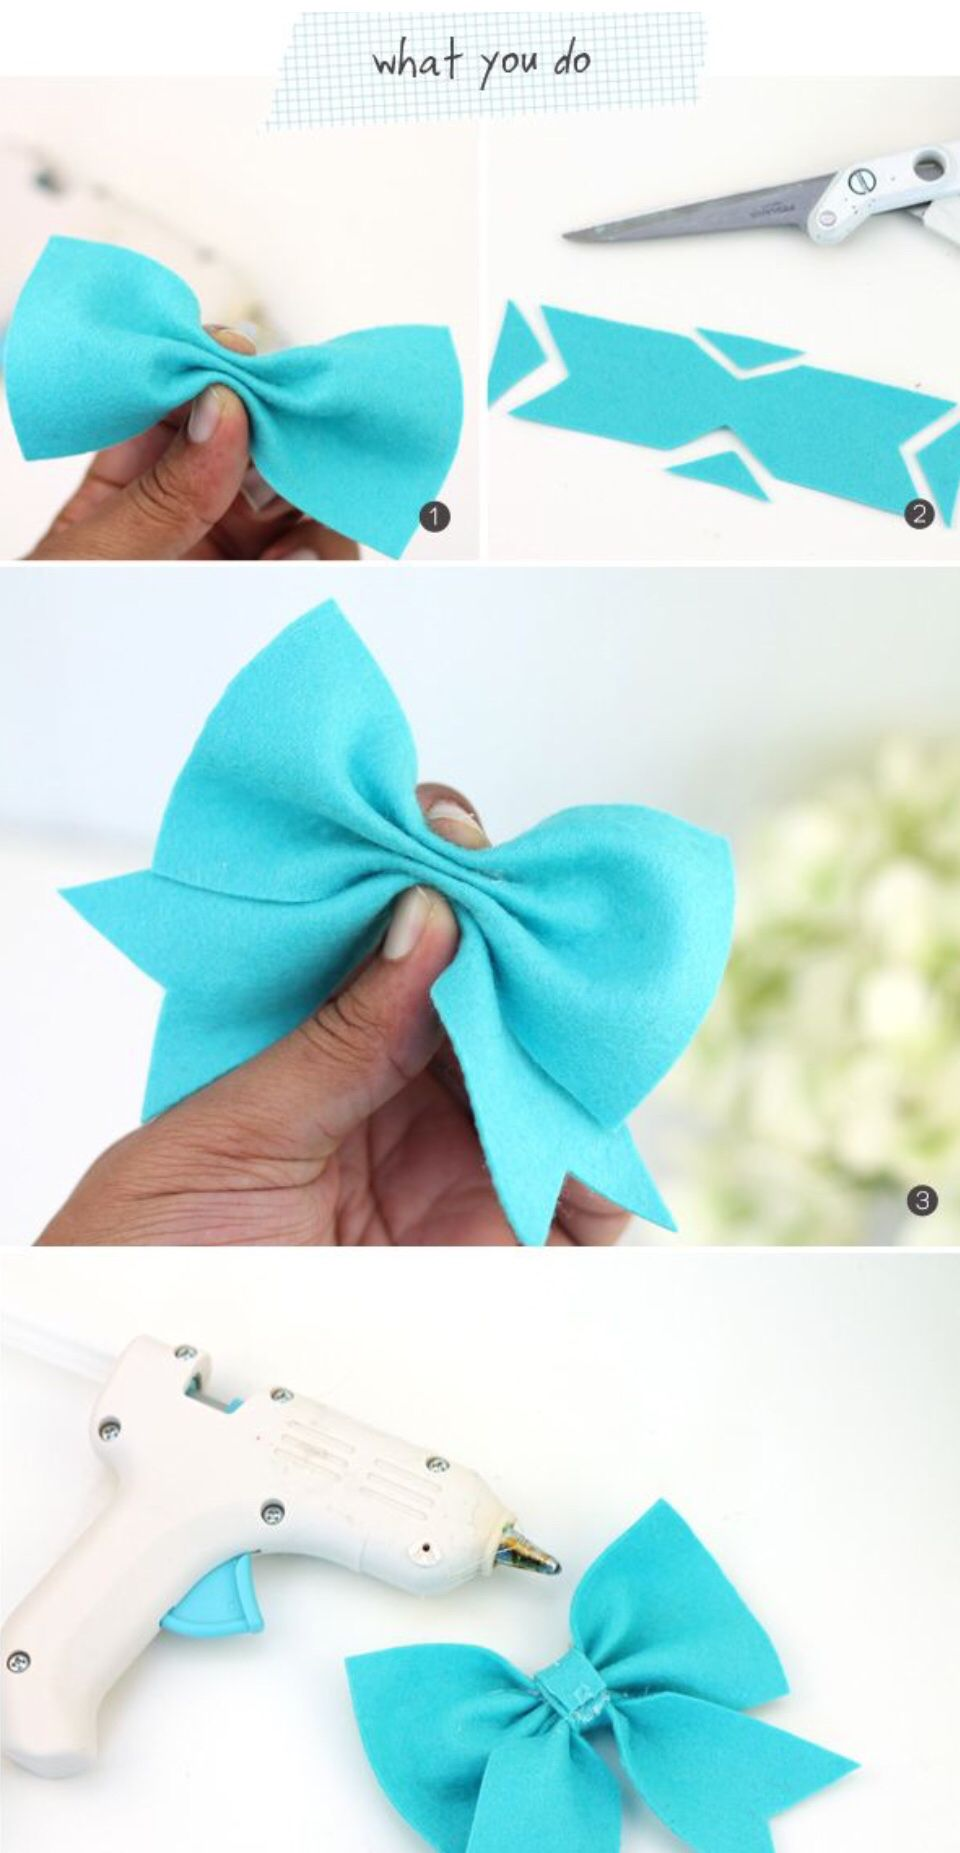 I Make Bows And Sell Them At Craft Fairs And This Might Be A Cute